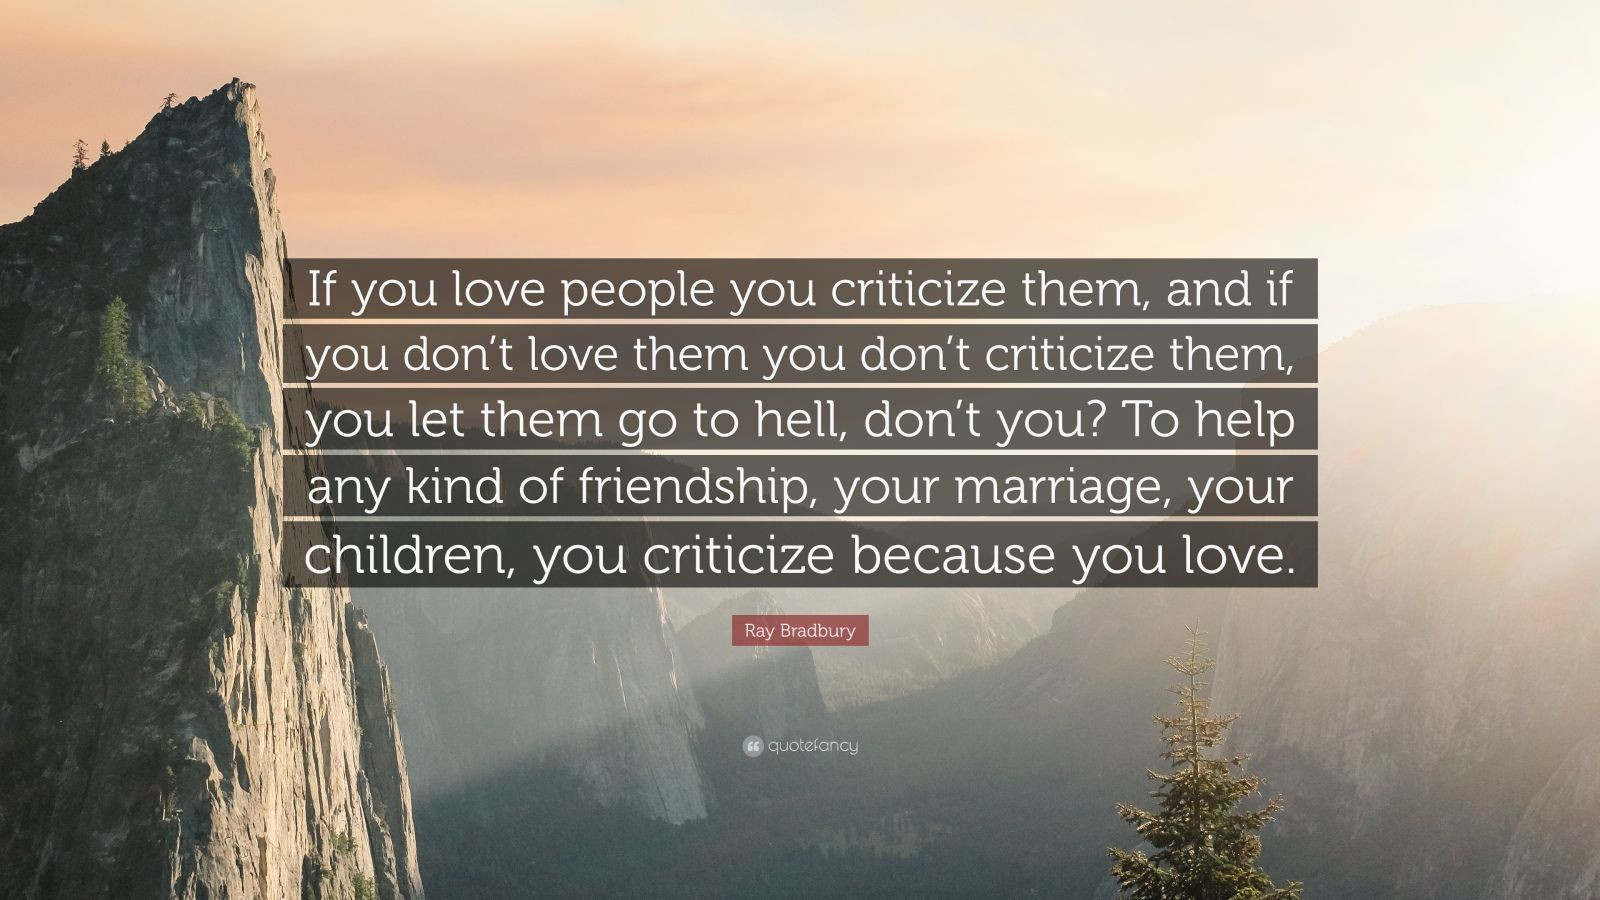 "Ray Bradbury Quote: ""If you love people you criticize them, and if you don't love them you don't criticize them, you let them go to hell, don't you? To help any kind of friendship, your marriage, your children, you criticize because you love."""